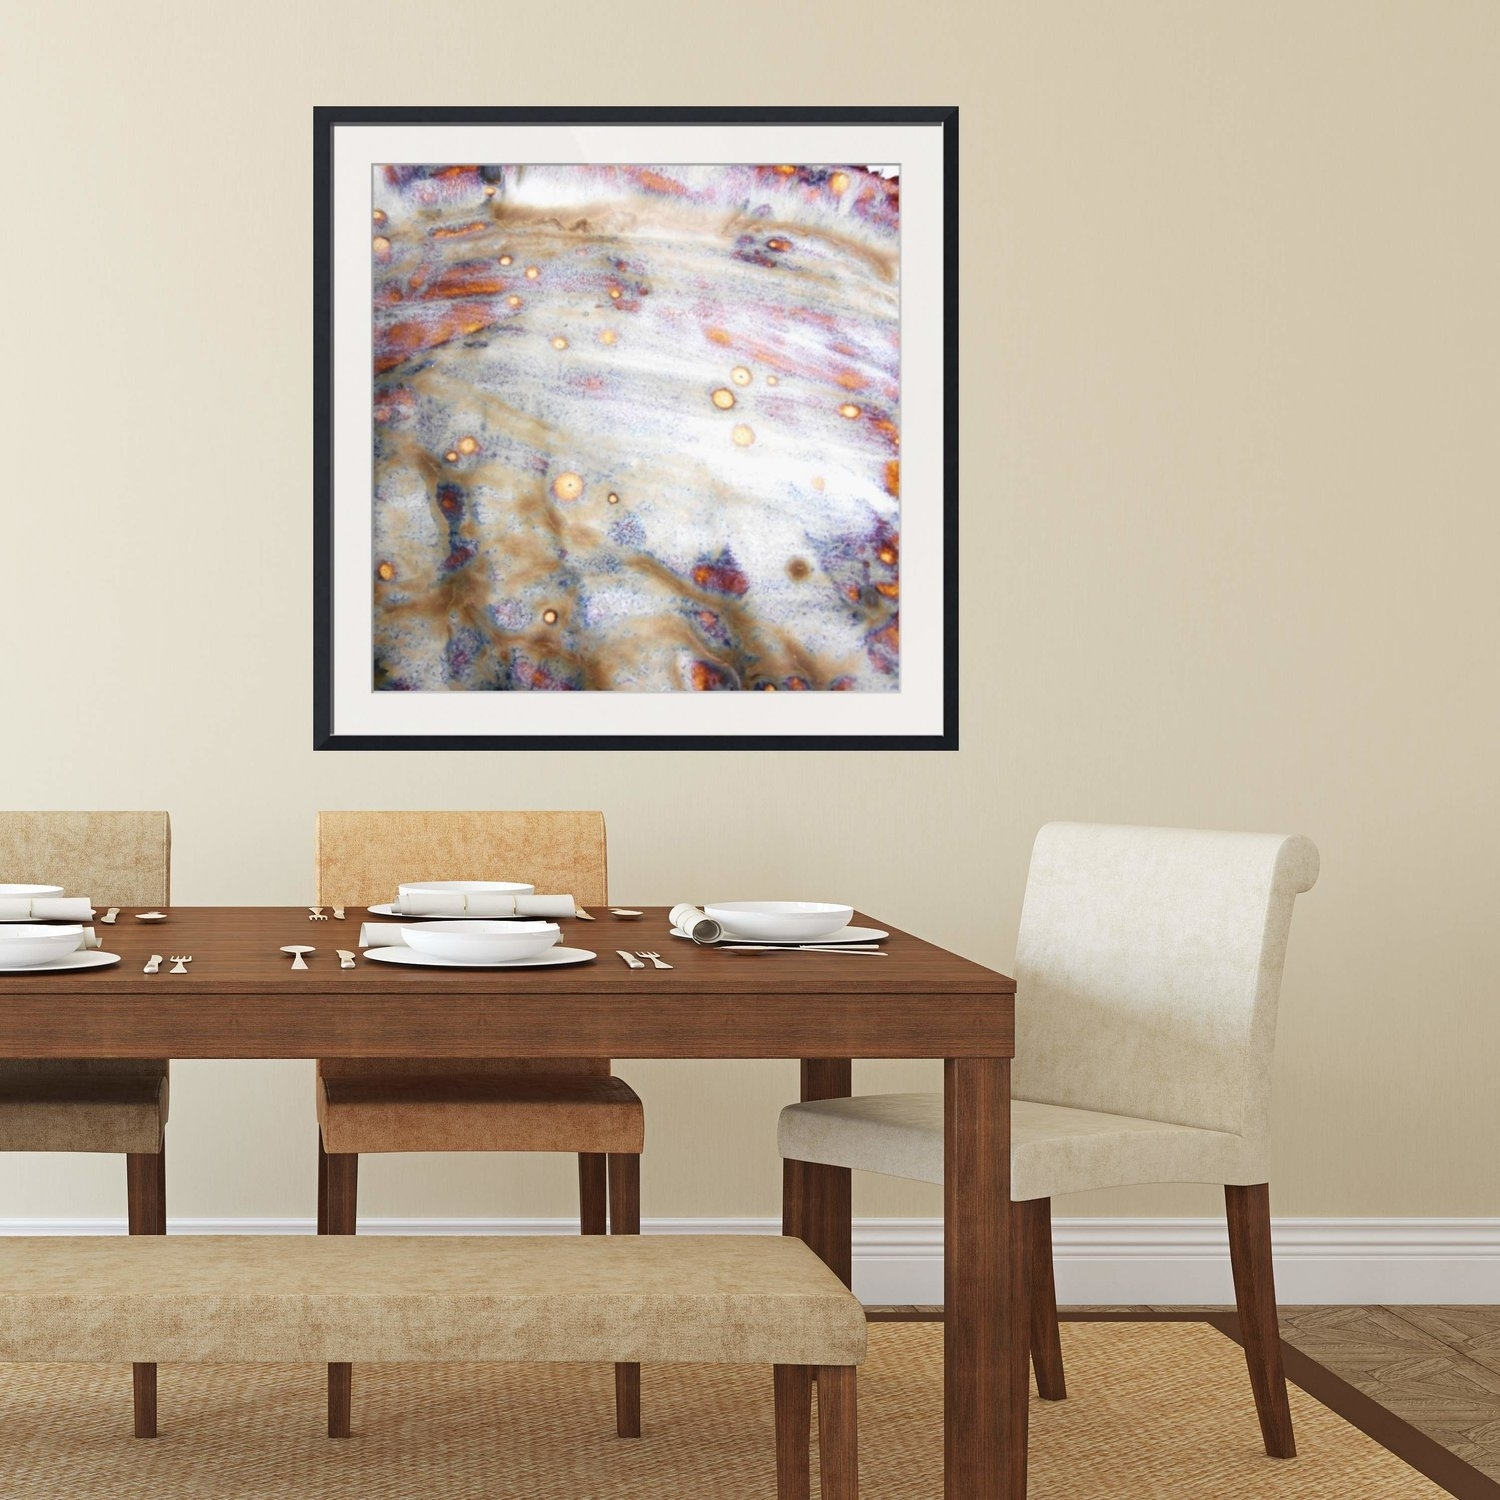 Abstract Framed Wall Art – Square #4 V2 | Rustic Artwork, Modern Throughout Most Recent Abstract Wall Art For Dining Room (View 8 of 20)